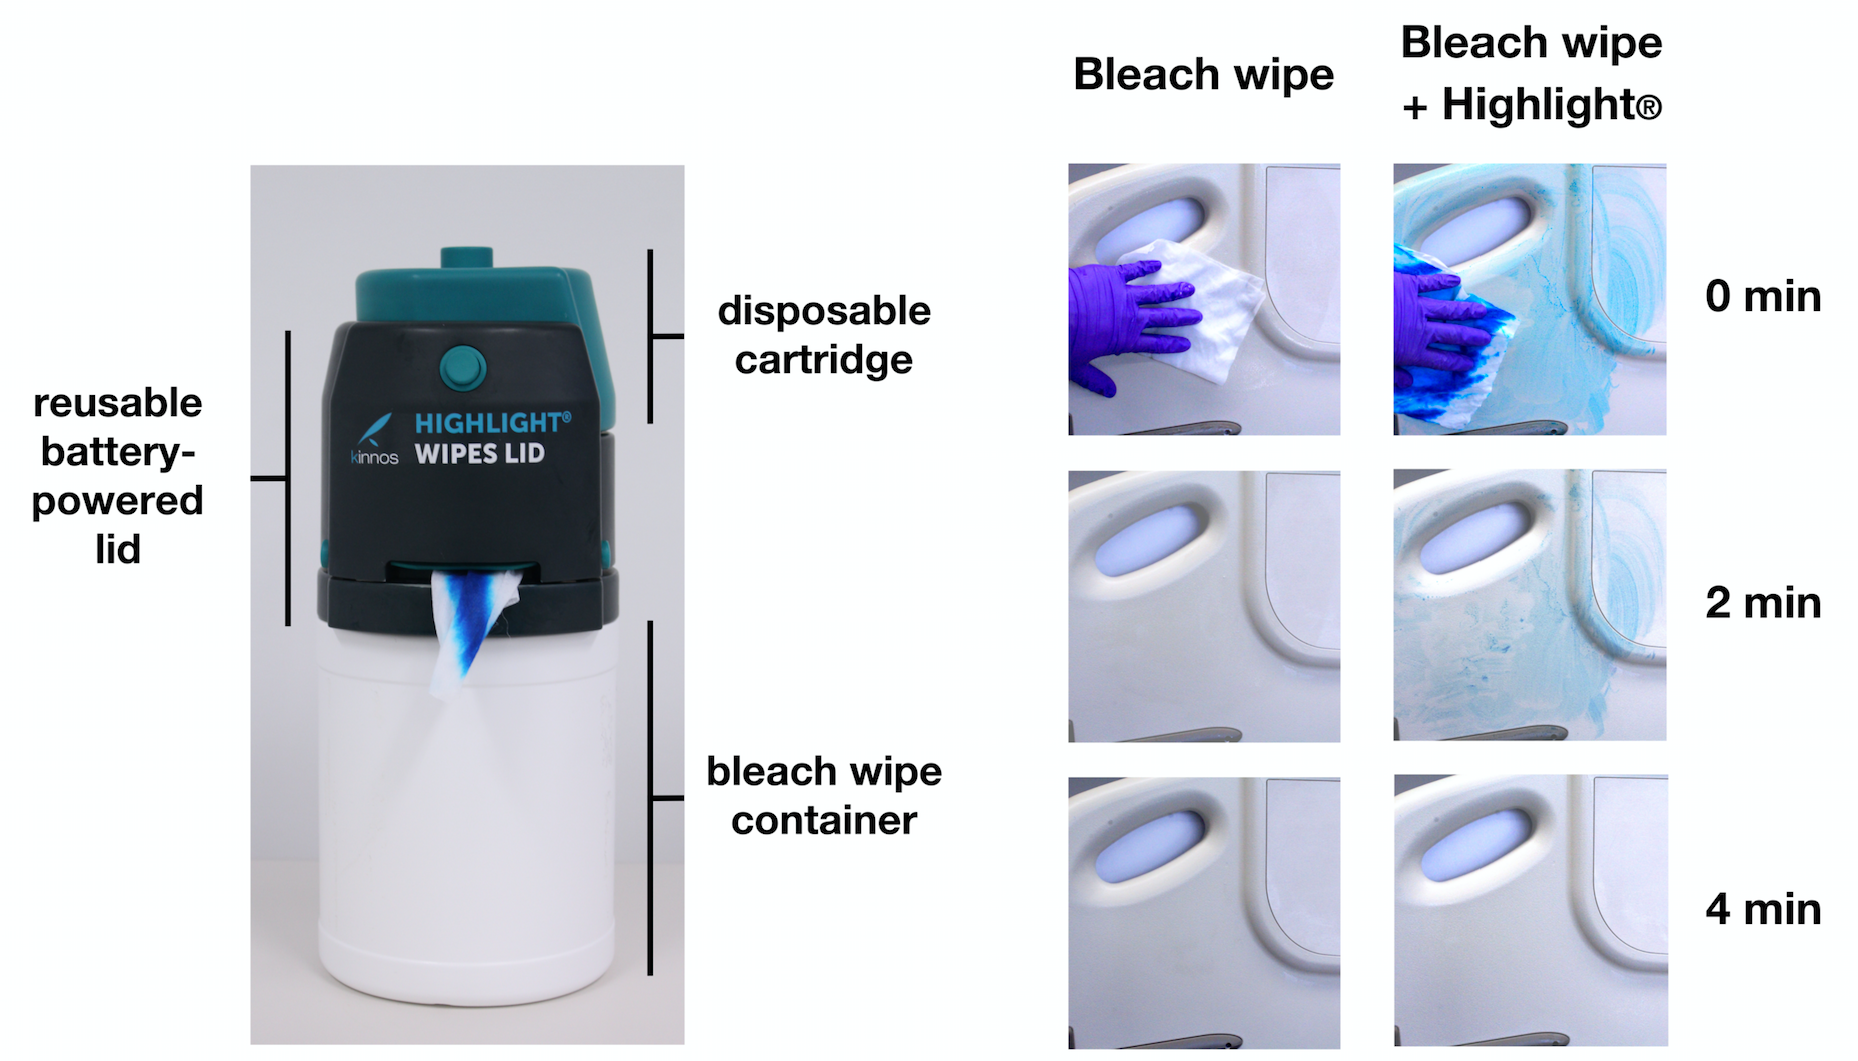 (Left) The reusable battery-powered lid attaches directly on top of standard containers of commercially available bleach wipes. A disposable cartridge inserts on top of the reusable lid and contains the Highlight additive, which is administered onto each bleach wipe as it is dispensed. (Right) Comparison of visibility of surface coverage 0, 2, and 4 minutes after wiping a bedside rail using bleach wipes alone versus bleach wipes with Highlight.